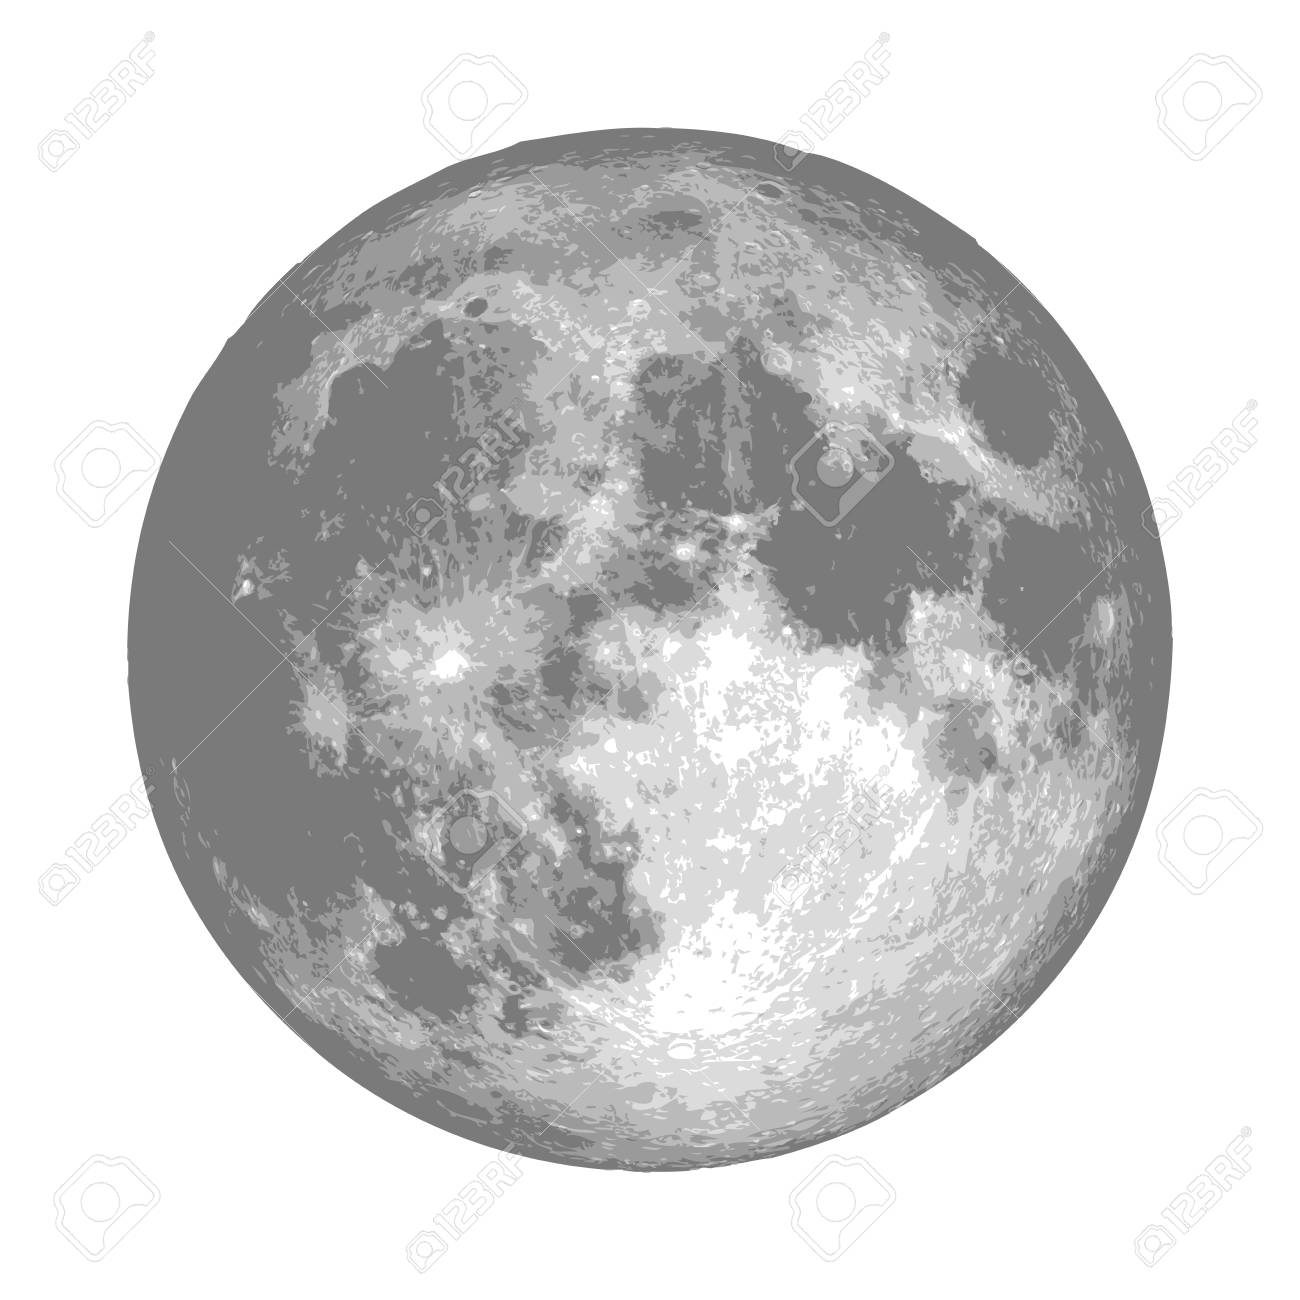 Realistic full moon  Astrology or astronomy planet design  Vector